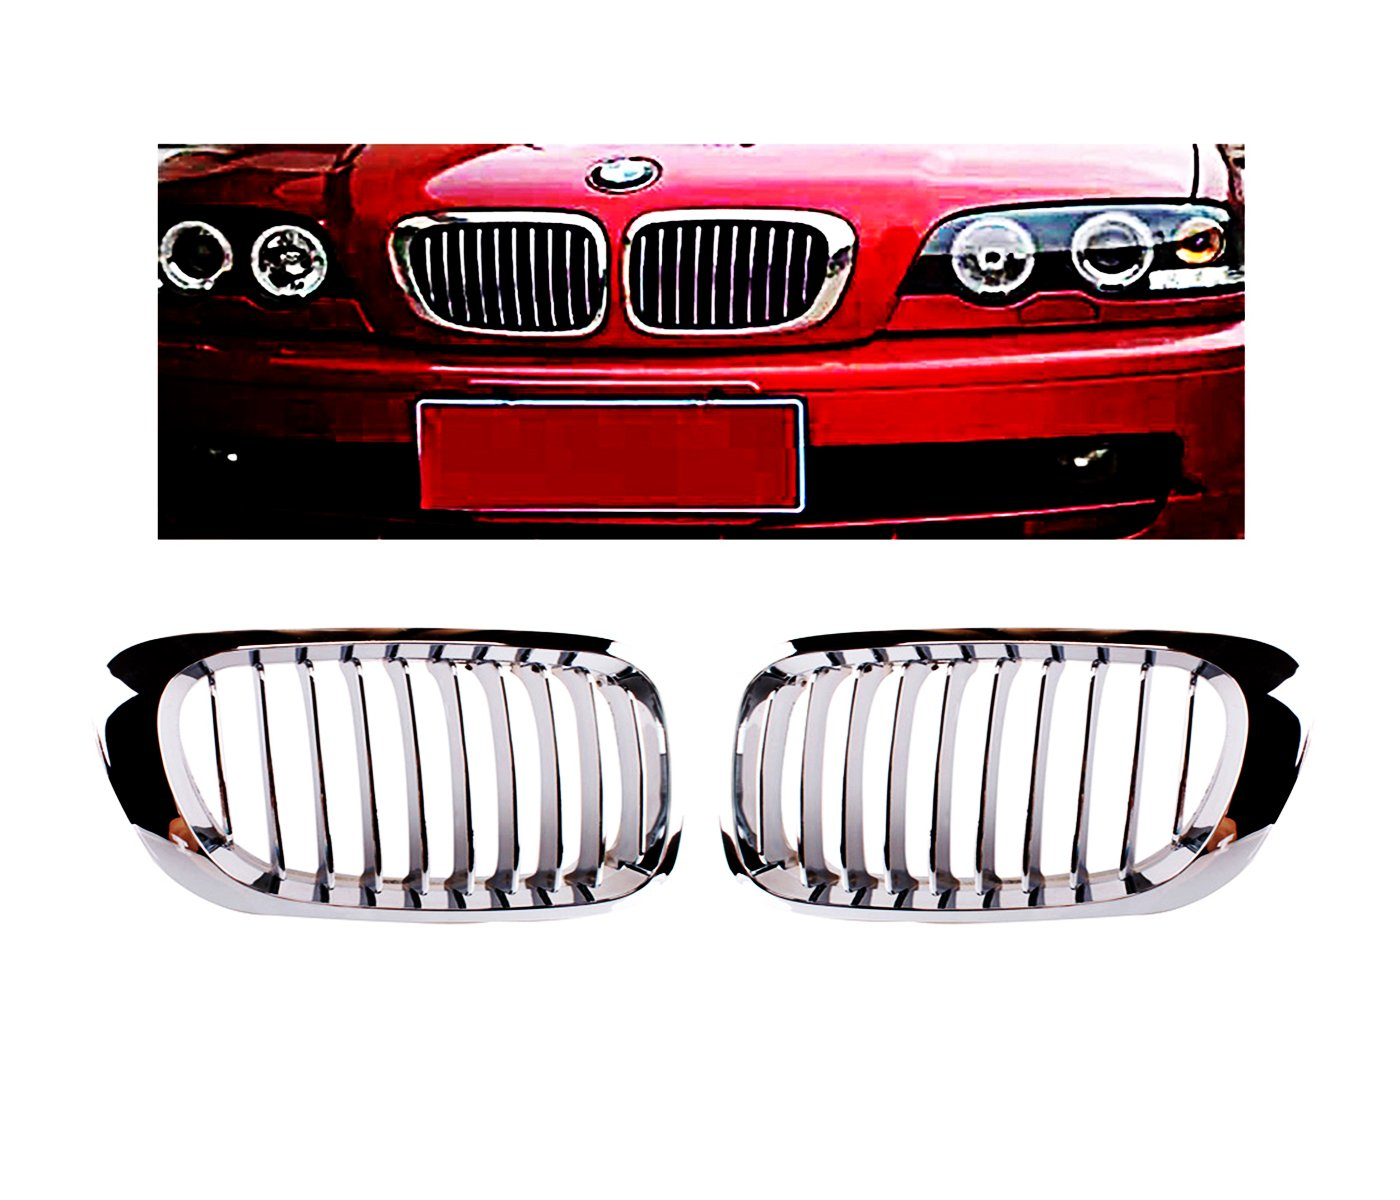 Cheap BMW 323i Service Find Deals On Line At. Get Quotations Heart Horse Front Kidney Grille Grill For 19992001 BMW 3 Series E46 M3 323i. BMW. Belt Diagram 99 BMW 323ci At Scoala.co